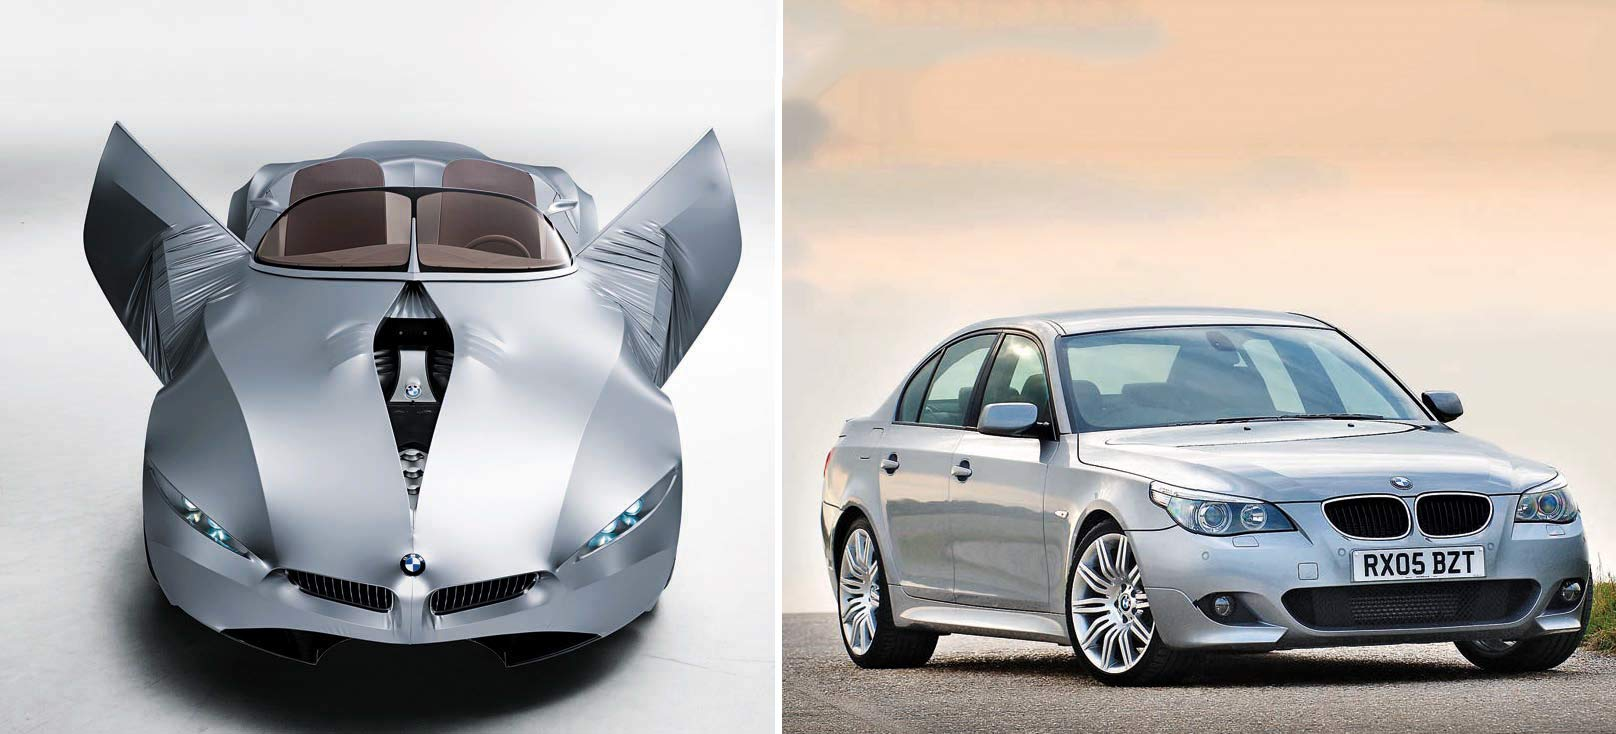 BMW design - Chris Bangle Visionary or Vandal? - Drive-My Blogs - Drive